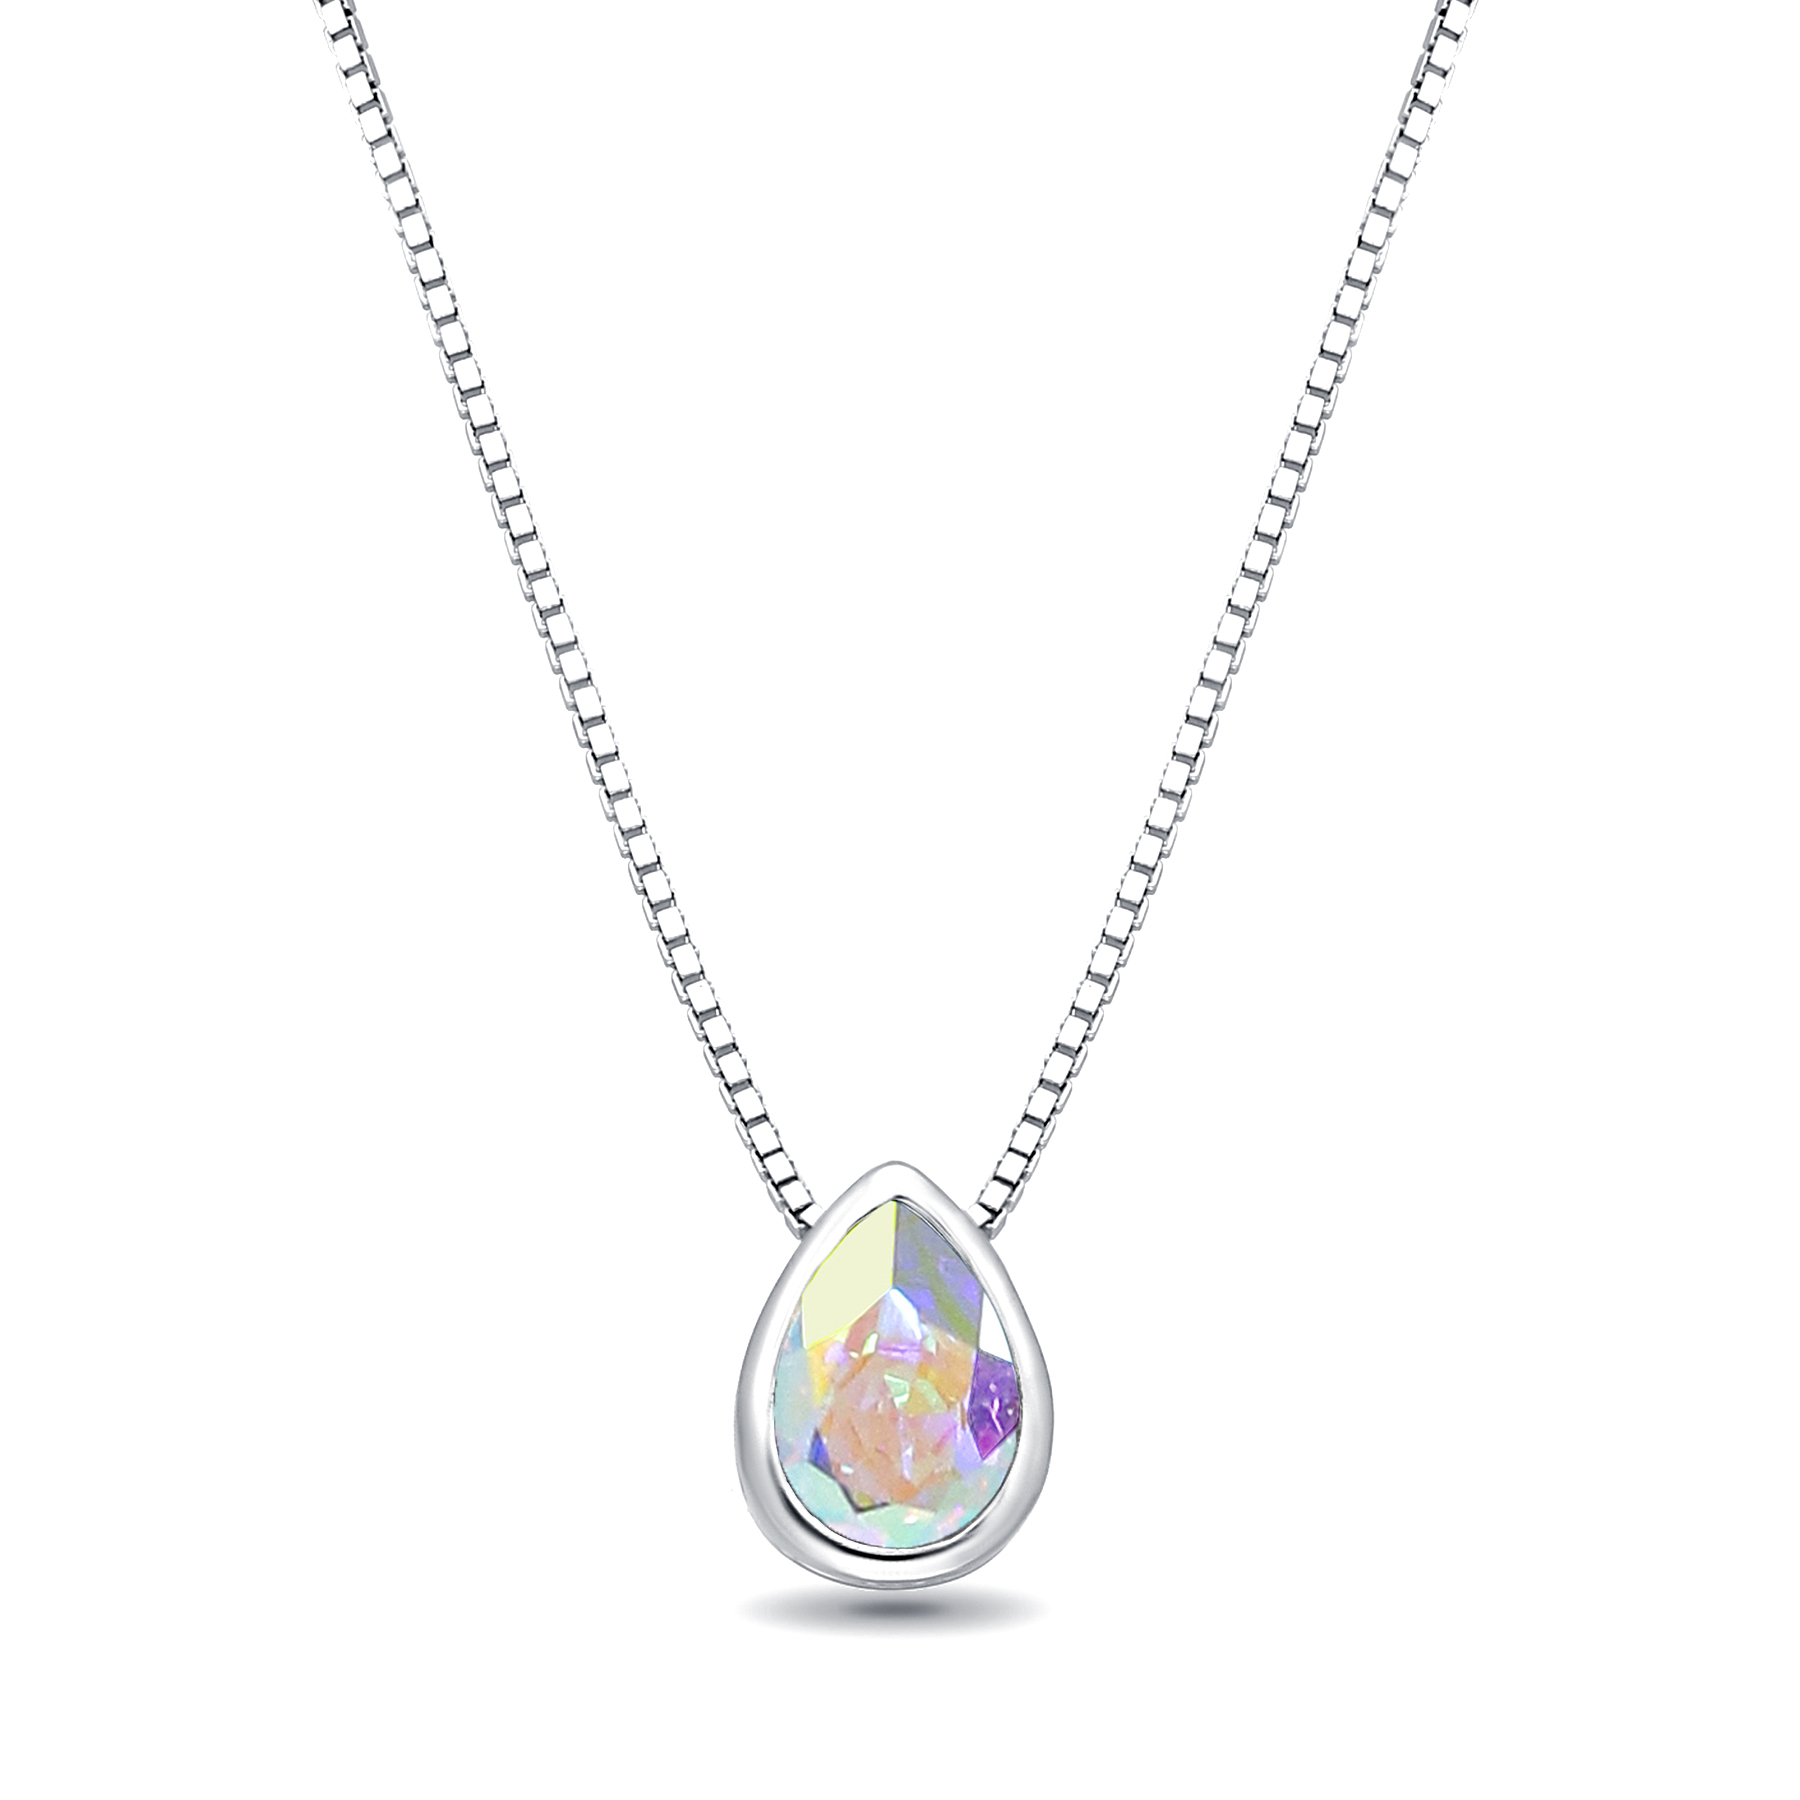 1583-193 - Sparkle by 7K - 925 Sterling Silver Necklace Decorated With Verifiable Authentic Swarovski Crystal